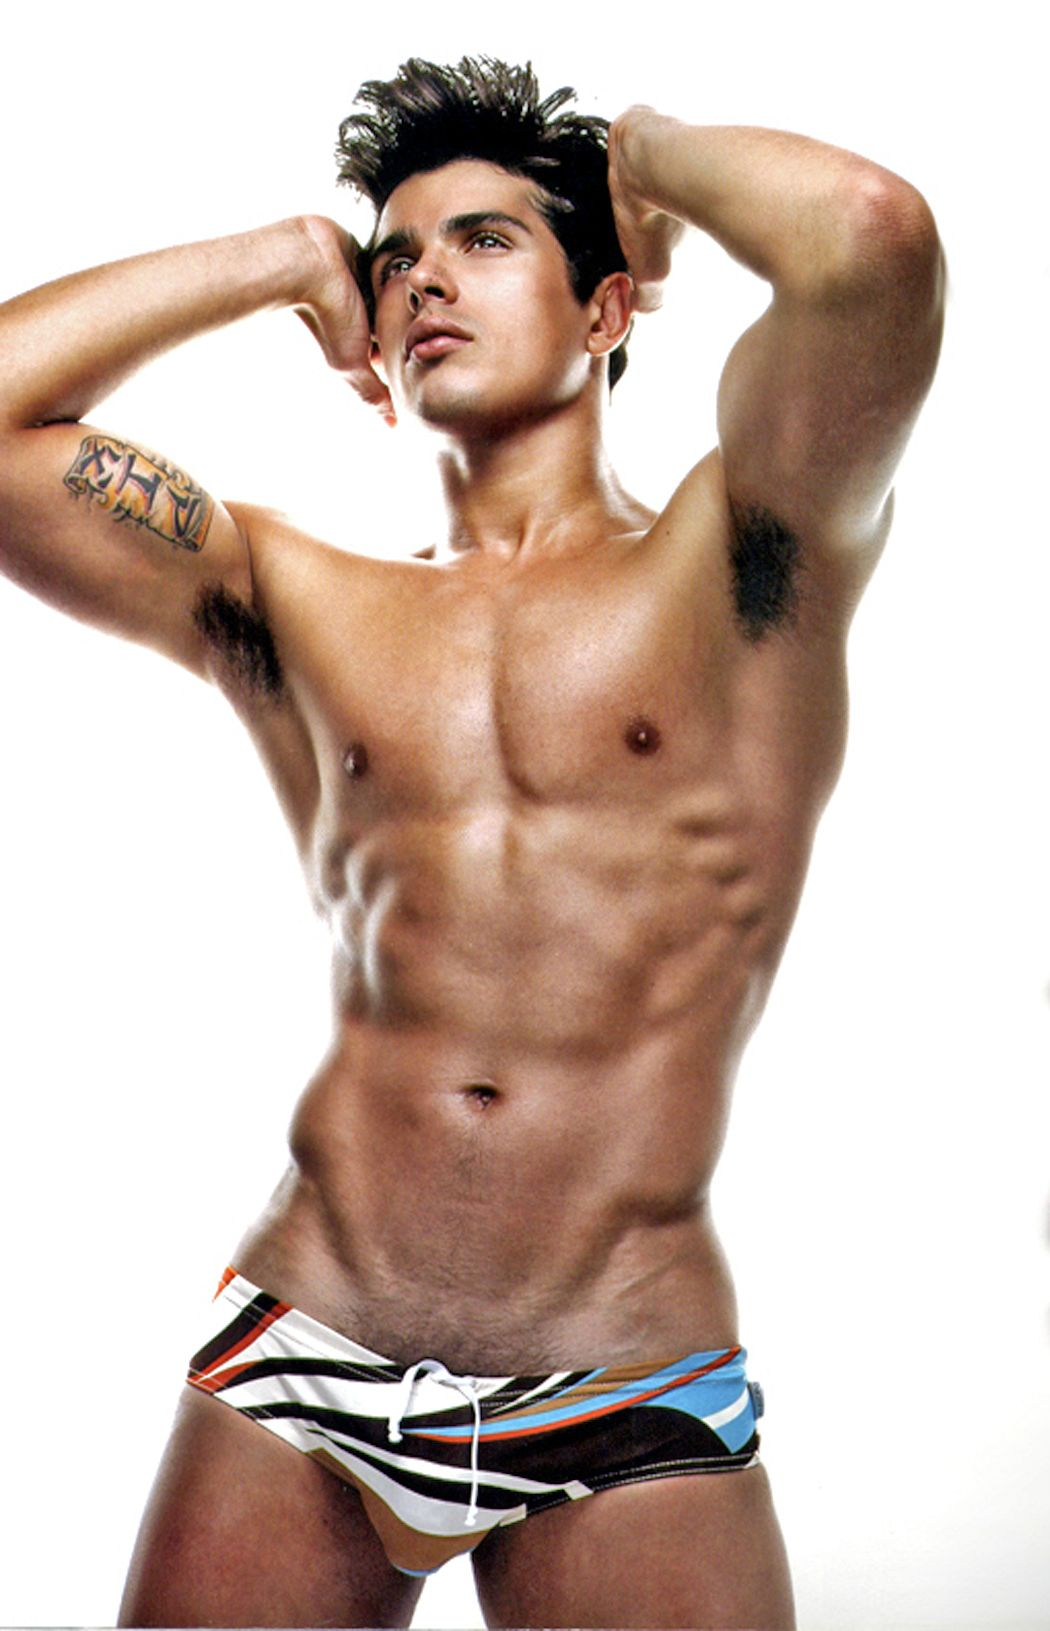 Edilson Nascimento - Page 8 - Male Fashion Models - Bellazon-9144